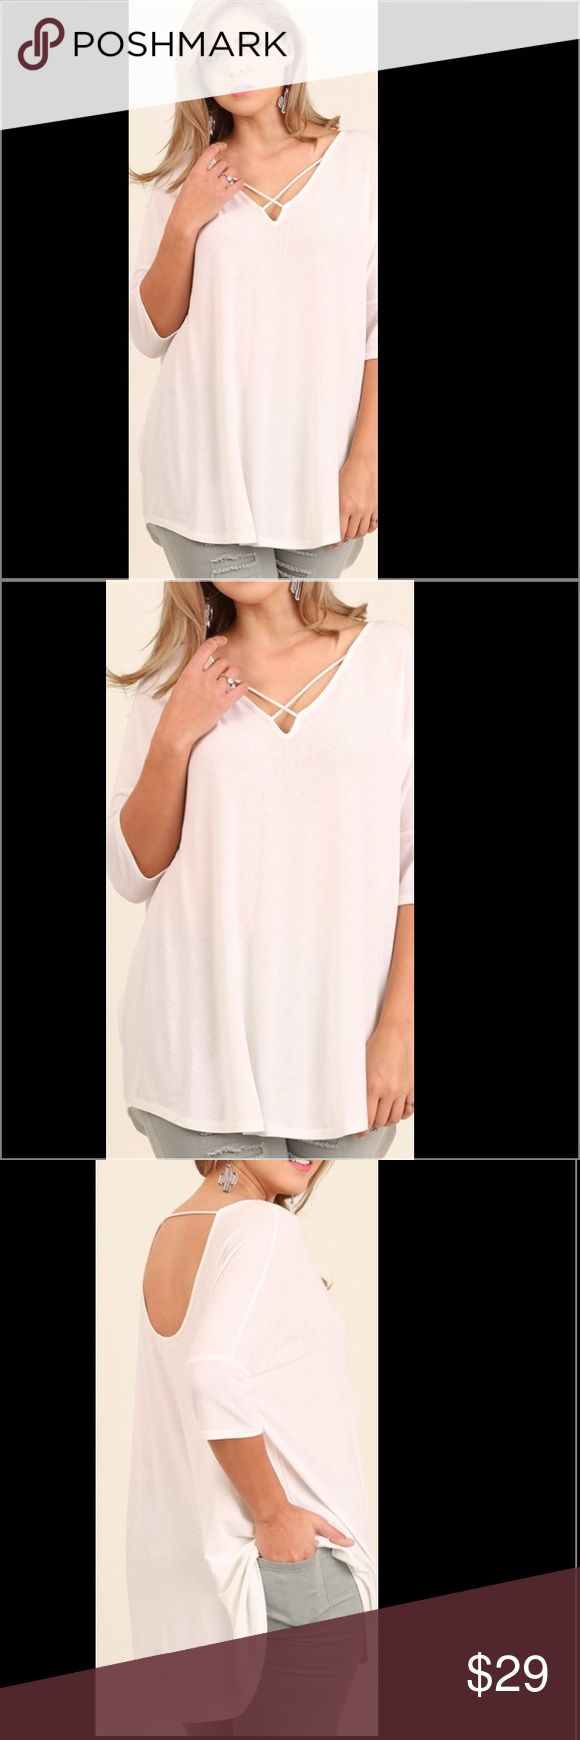 PLUS SIZE strappy top shirt blouse Crisscross Front Tunic with Open Back Details, COTTON BLEND, thin & light material, Sizes: XL, XXL, XXL ✅ Limited quantities available. Get yours while they last. 💋 ships same day of purchase. 💃🏻 Tops Blouses